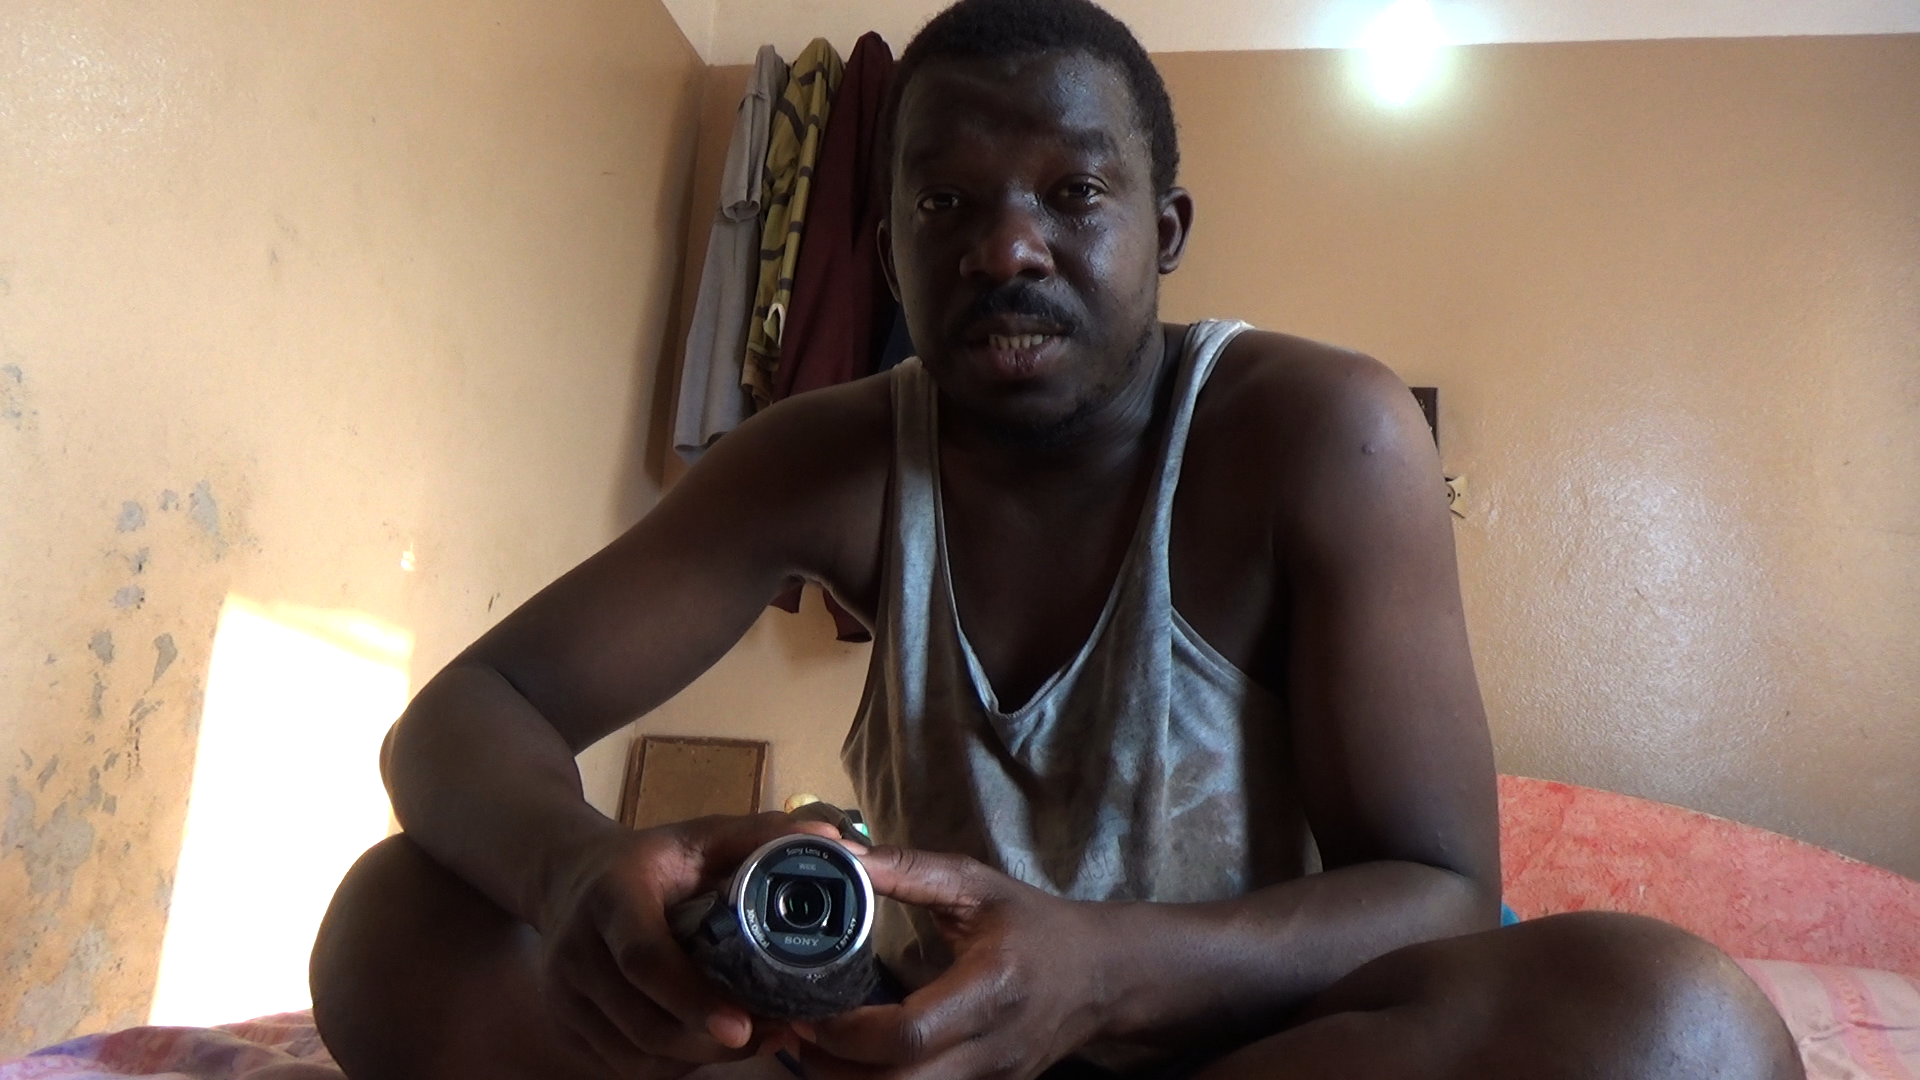 kumut-with-camera-in-room